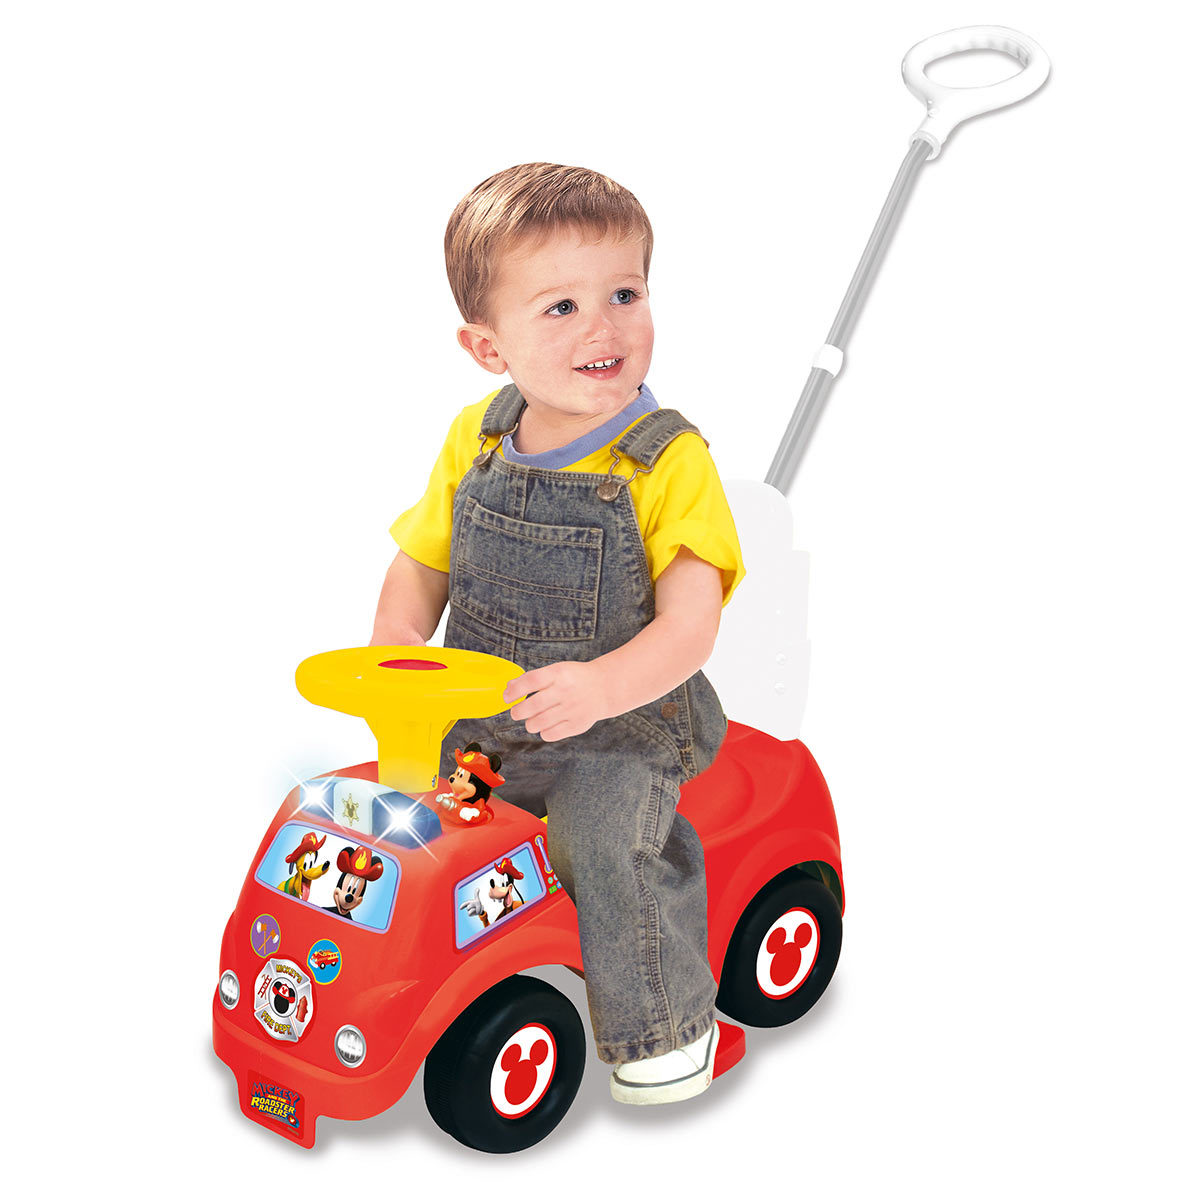 Toddler Car Dashboard Details About Mickey Mouse Children S Ride On Car Push Along Light And Sound Kids Ride On Toy